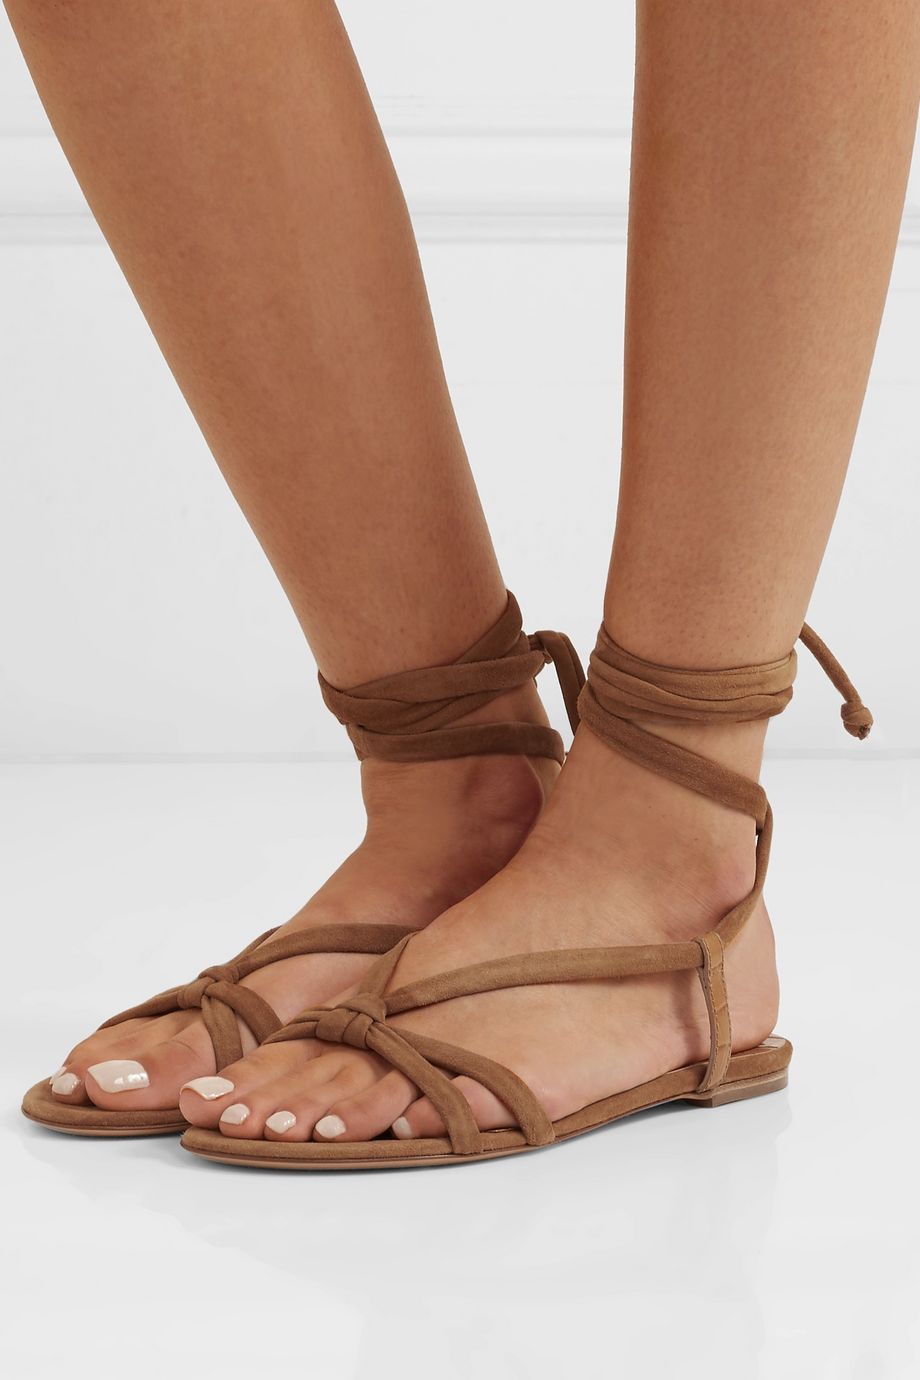 Gabriela Hearst Reeves suede and croc-effect leather sandals